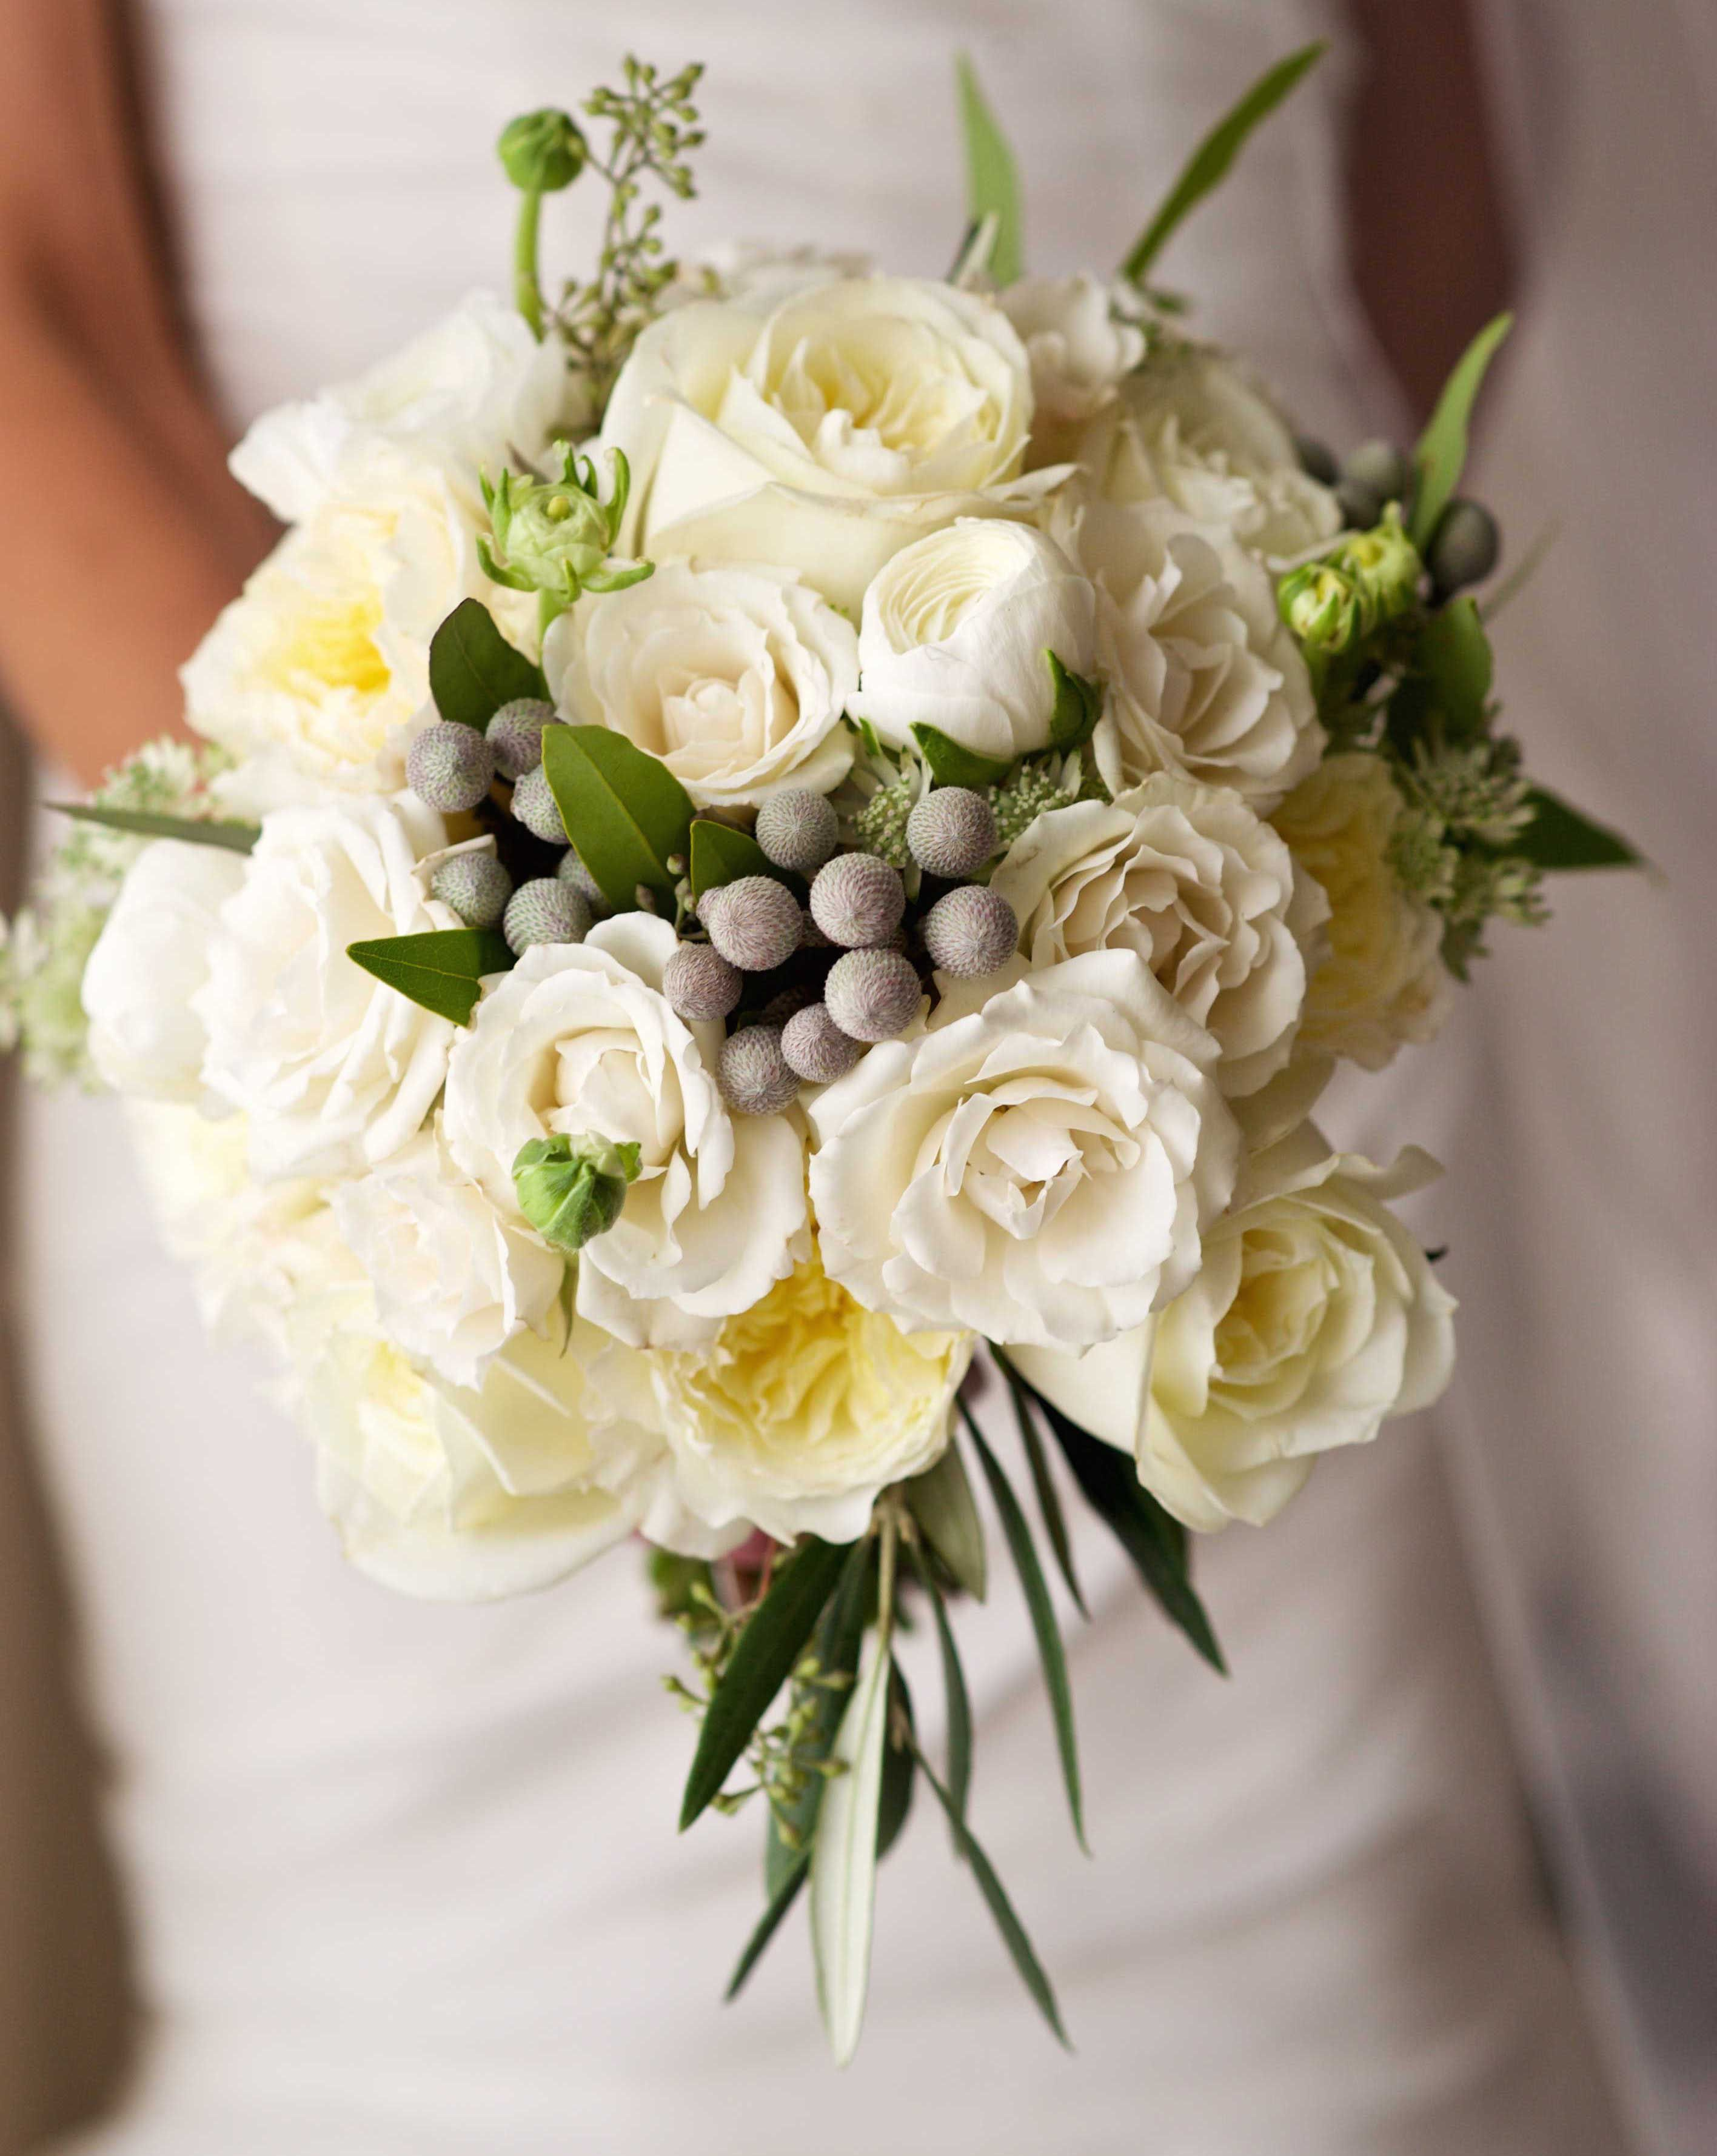 Winter Wedding Bouquet Ideas White Roses Greenery Silver Berries